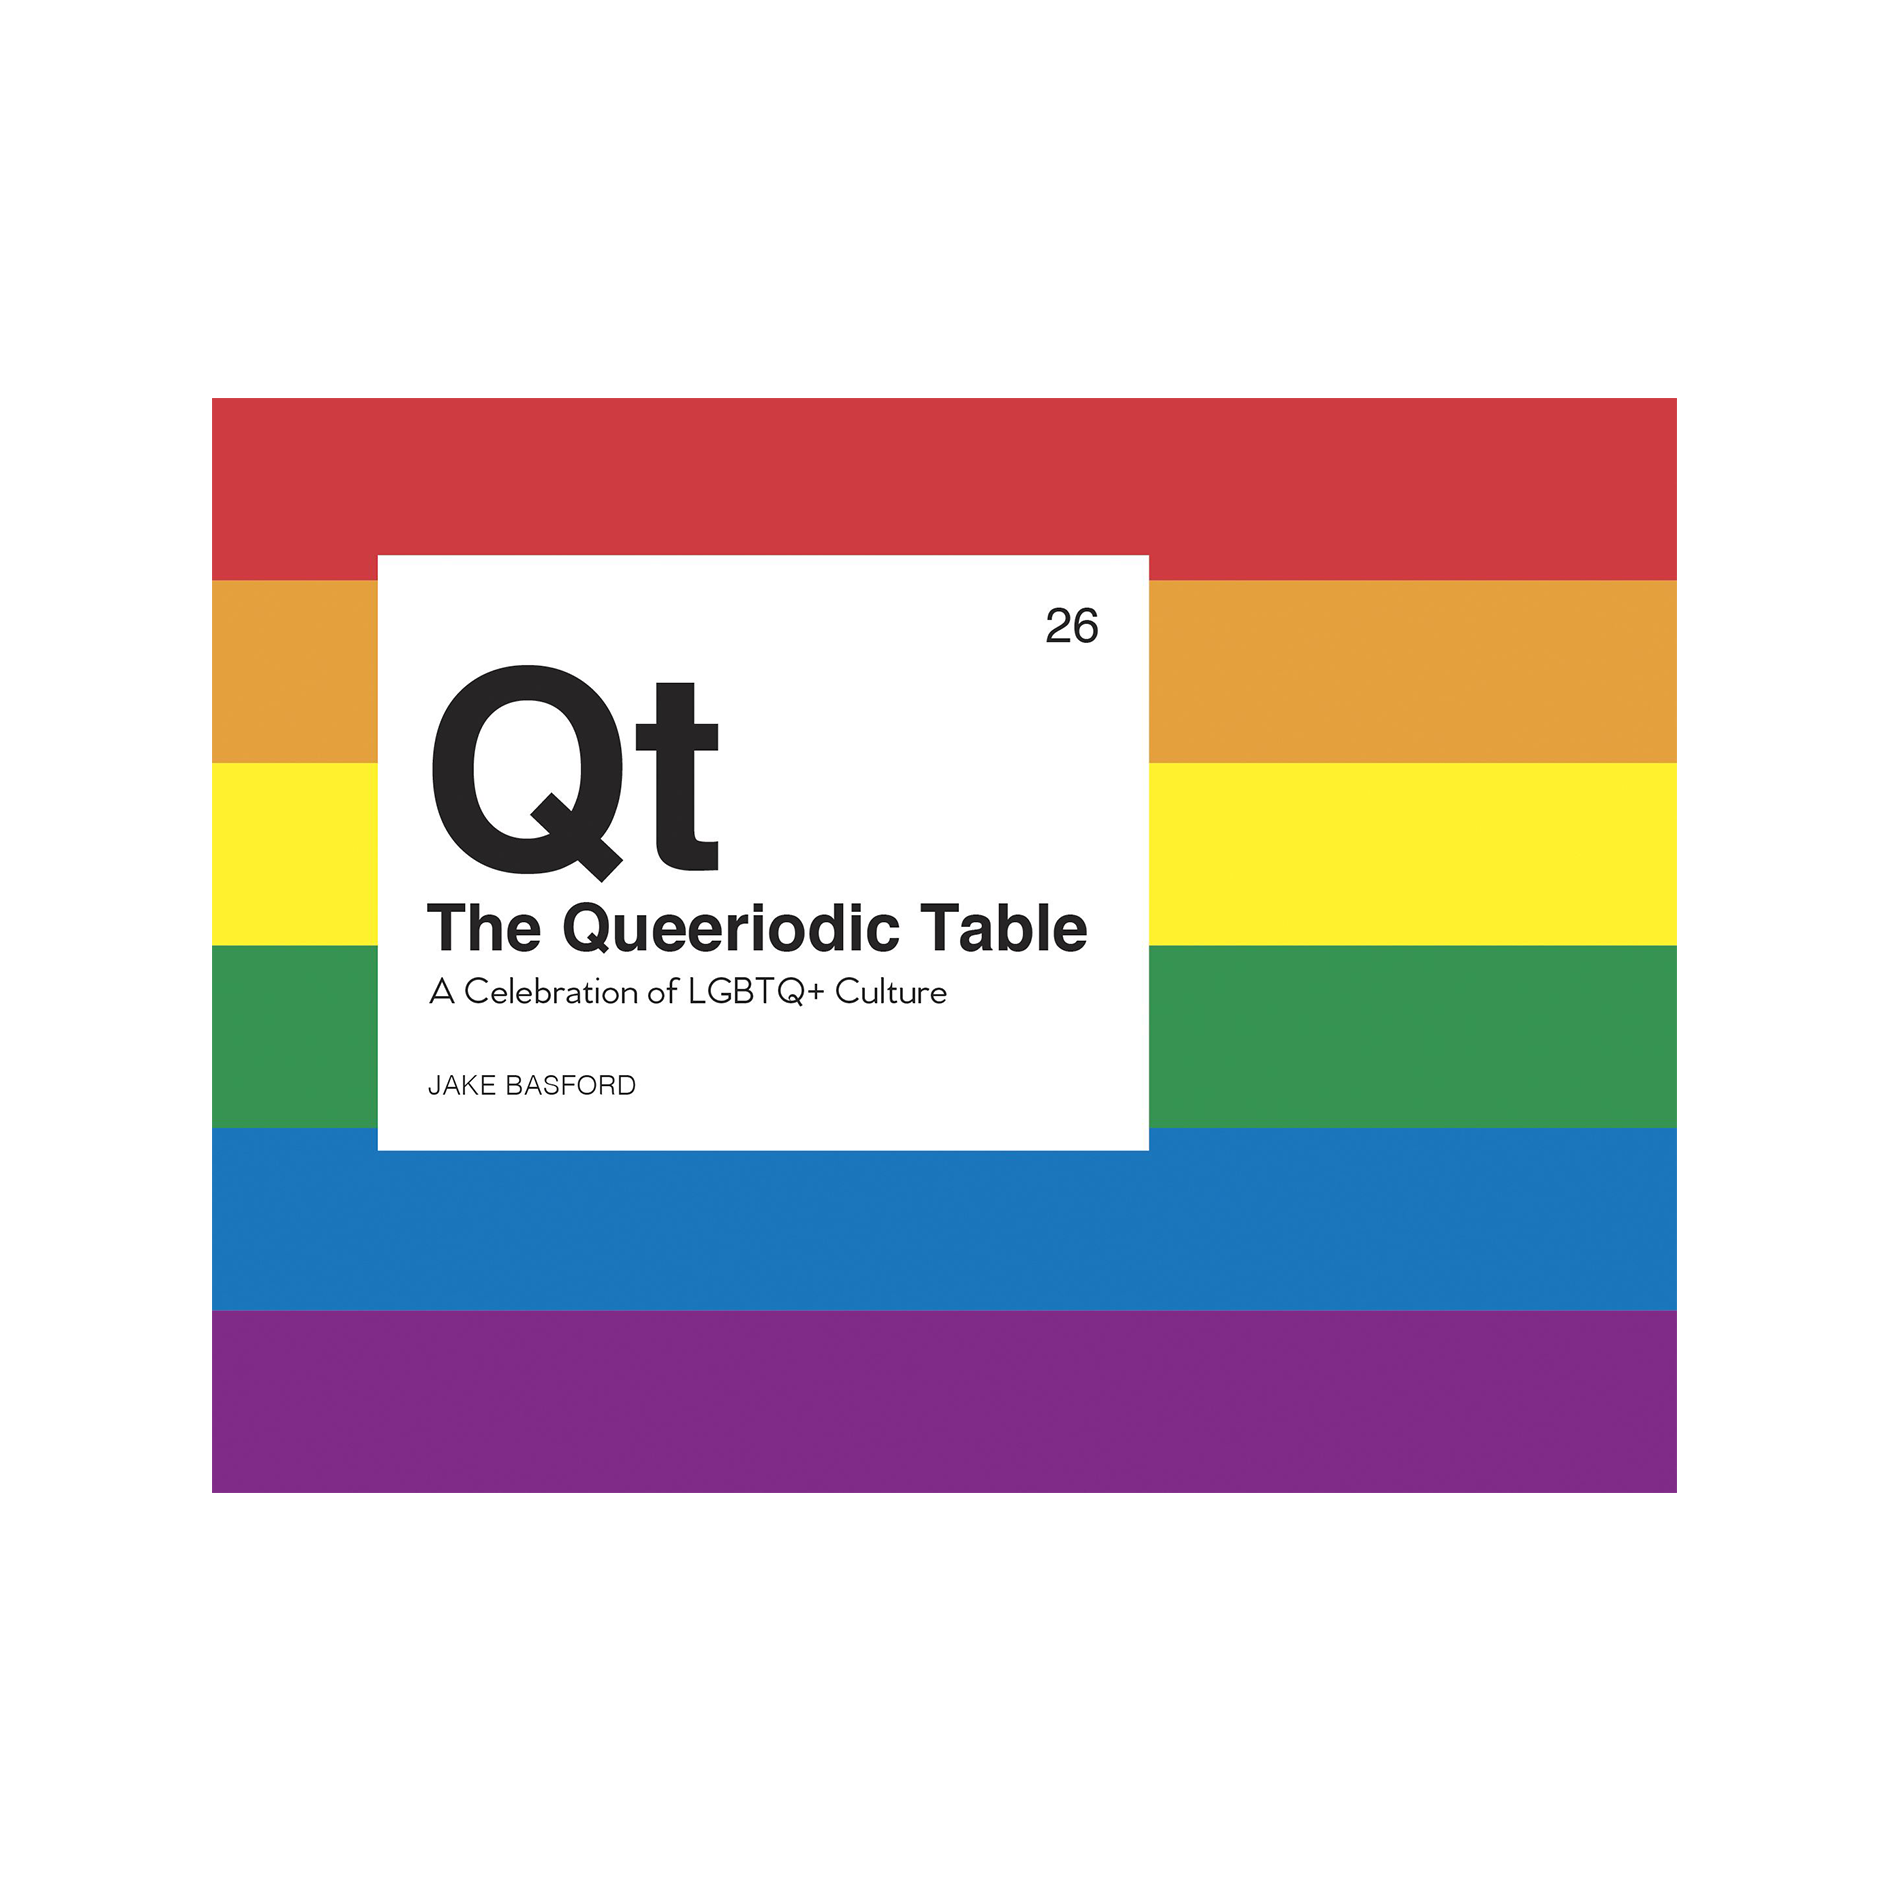 The Queeriodic Table